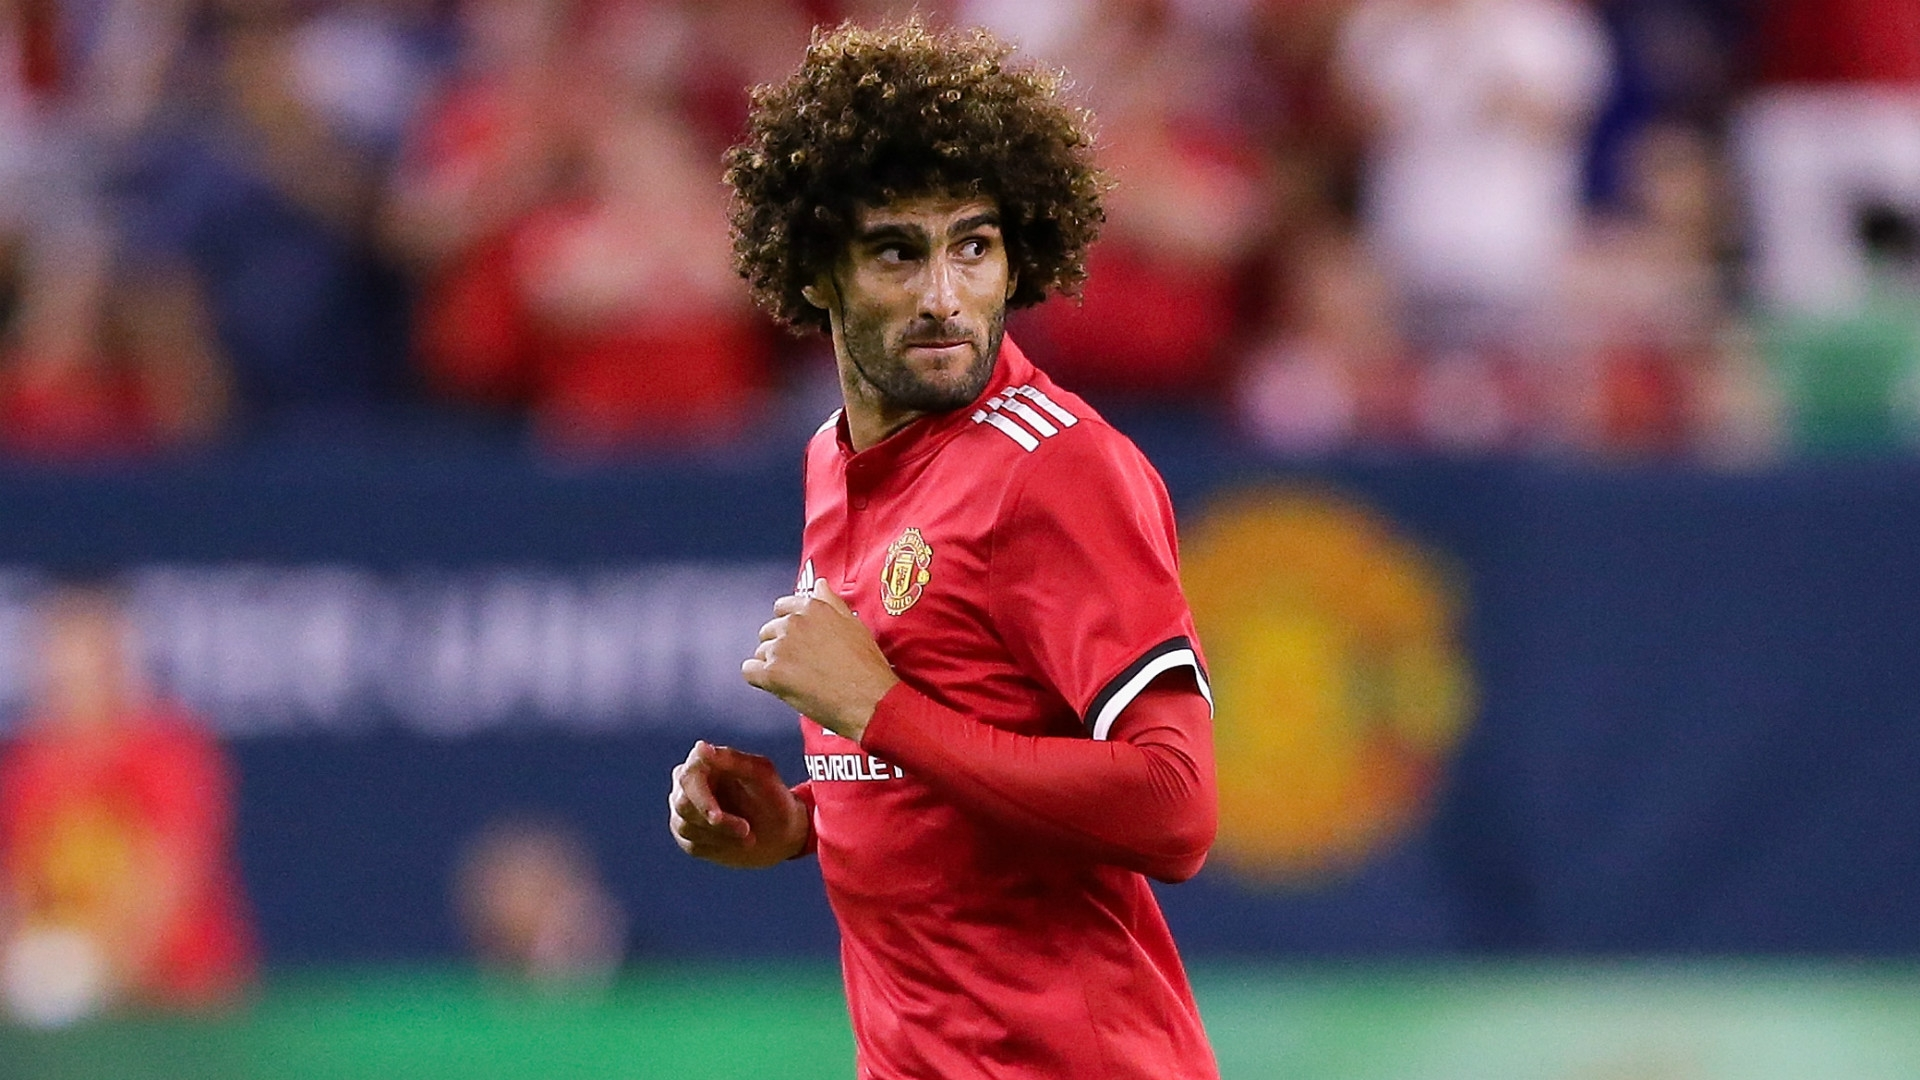 Mourinho's claims seem to be supported by the fact that Fellaini was on the field for Manchester United in the game against Valerenga. Fellaini was part of a three-man midfield alongside veteran Michael Carrick and Paul Pogba.